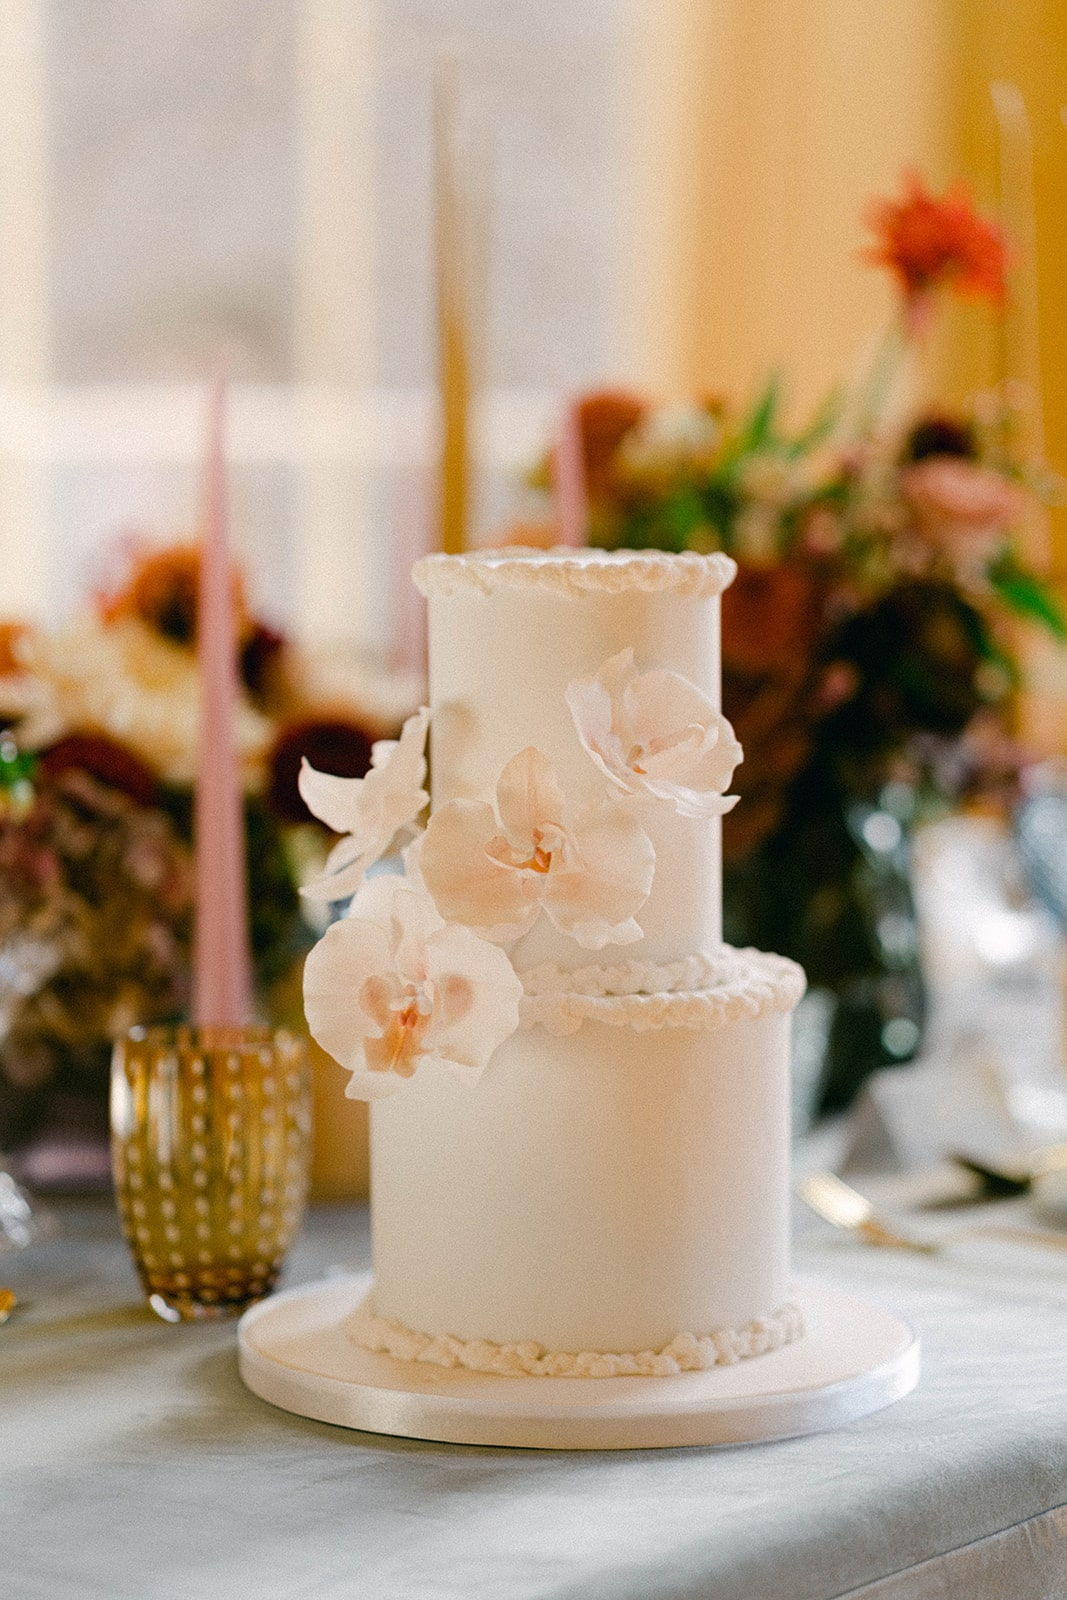 classic wedding cake with floral decoration